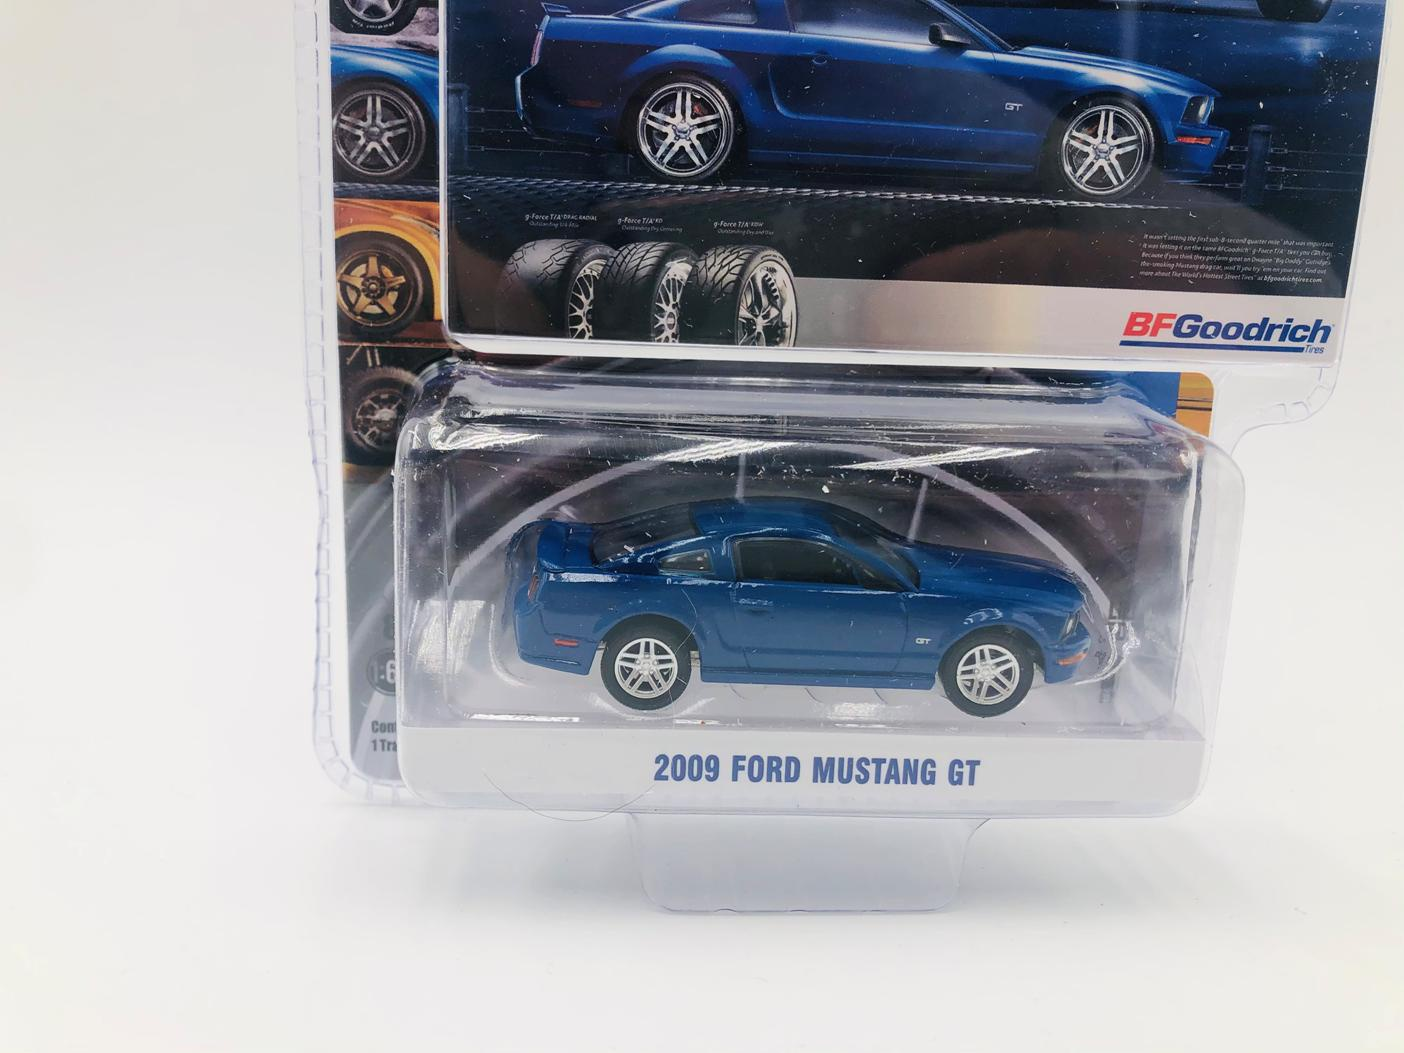 Ford Mustang GT 2009 0-178 MPH